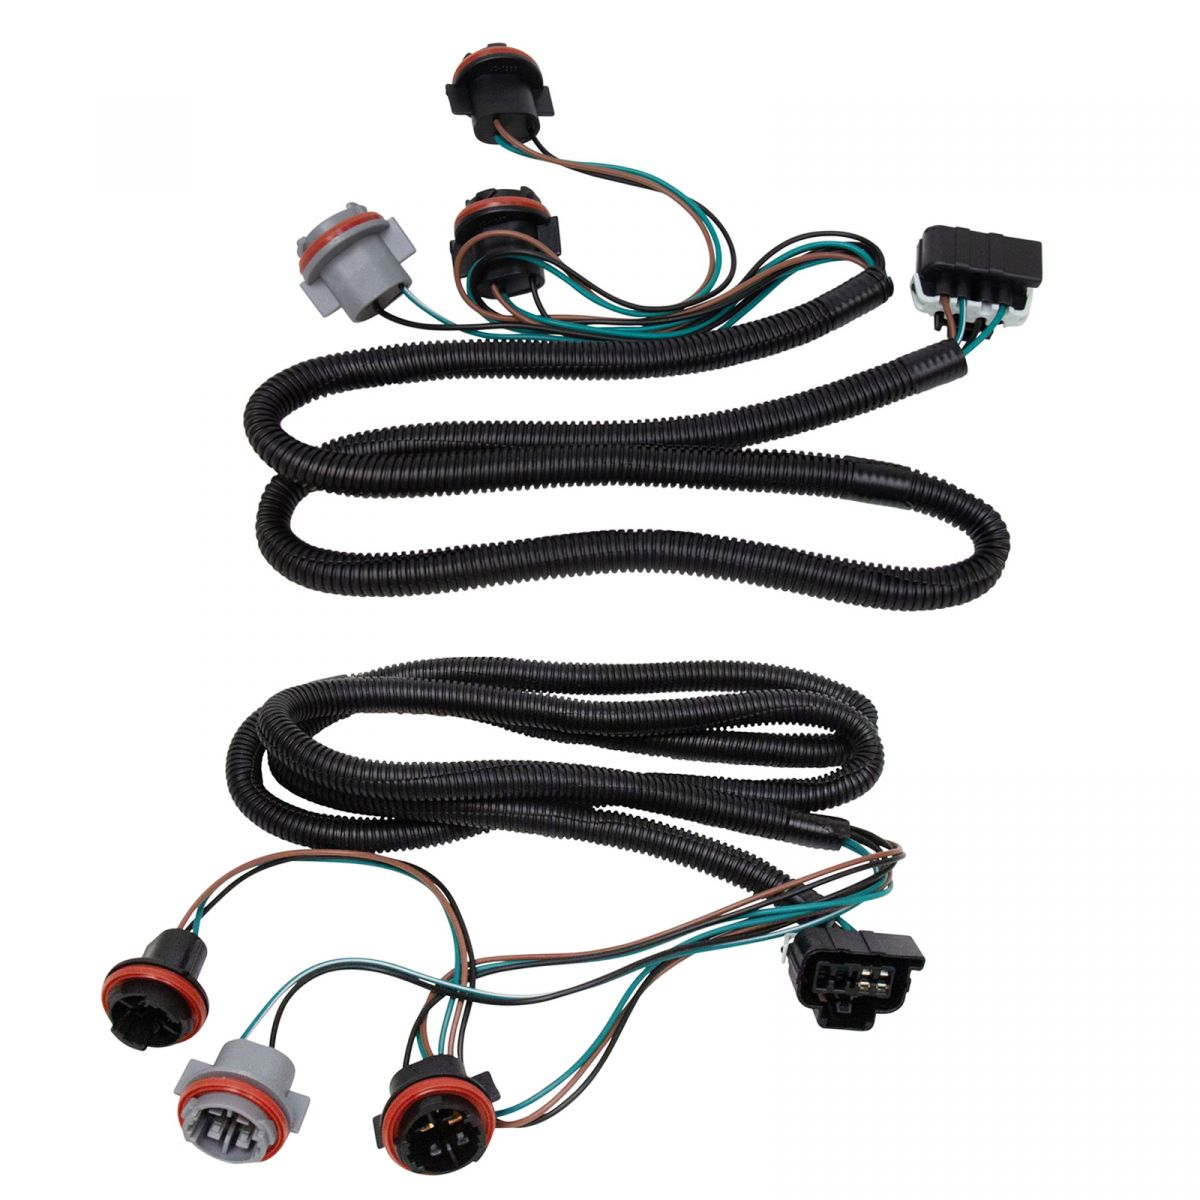 hight resolution of tail light lamp wiring harness lh rh pair for chevy silverado pickup truck new